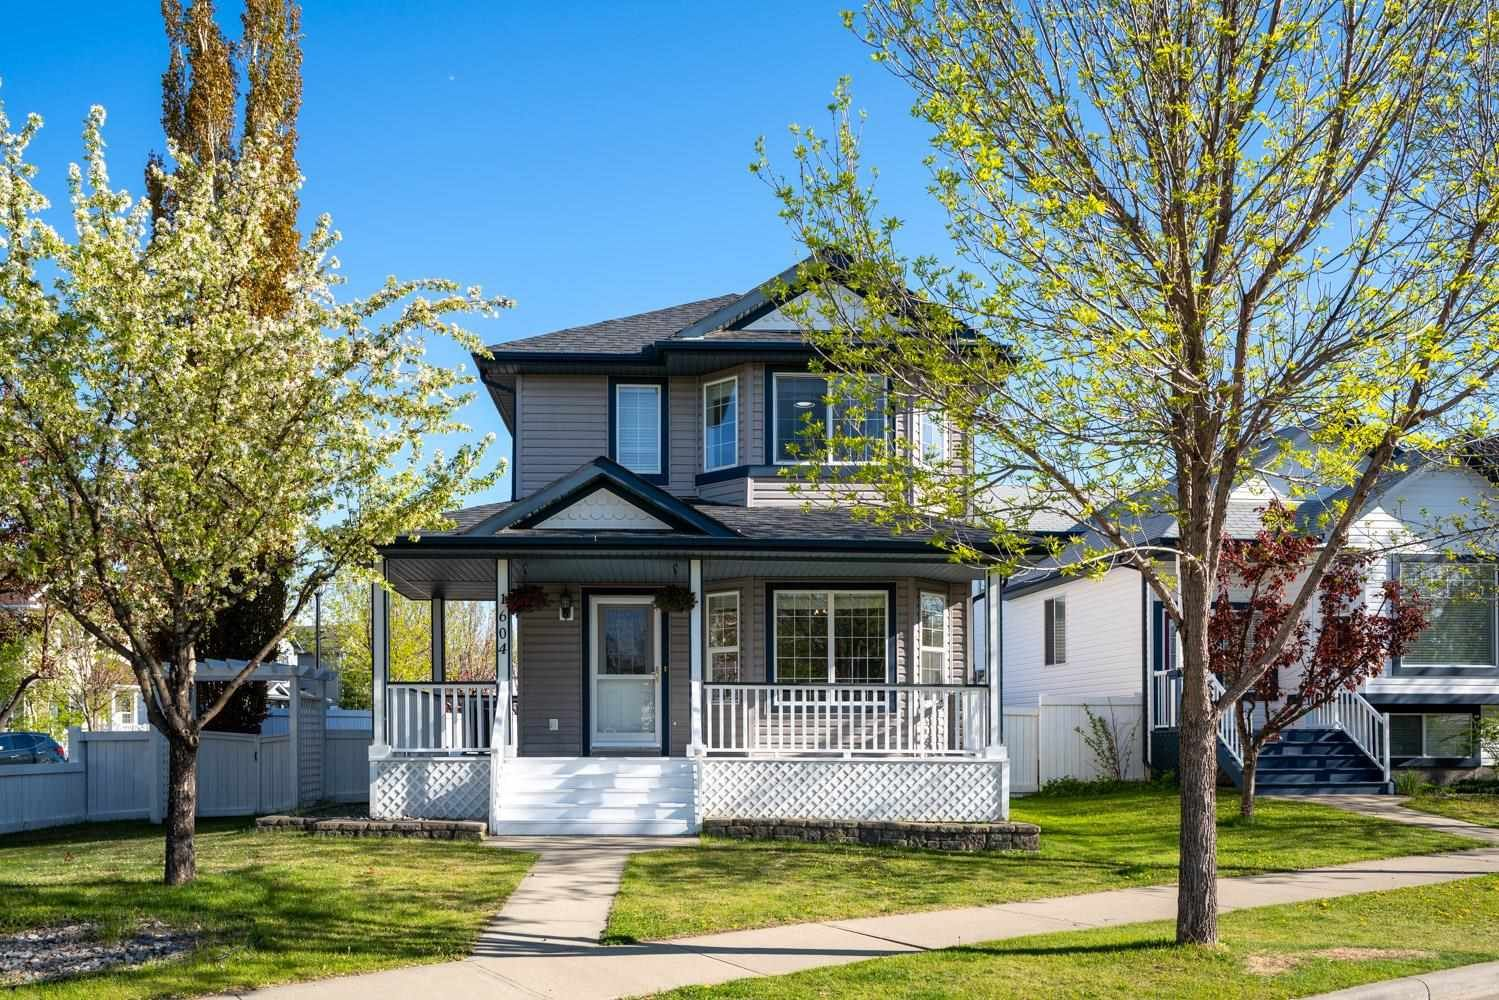 Main Photo: 1604 TOMPKINS Place in Edmonton: Zone 14 House for sale : MLS®# E4255154